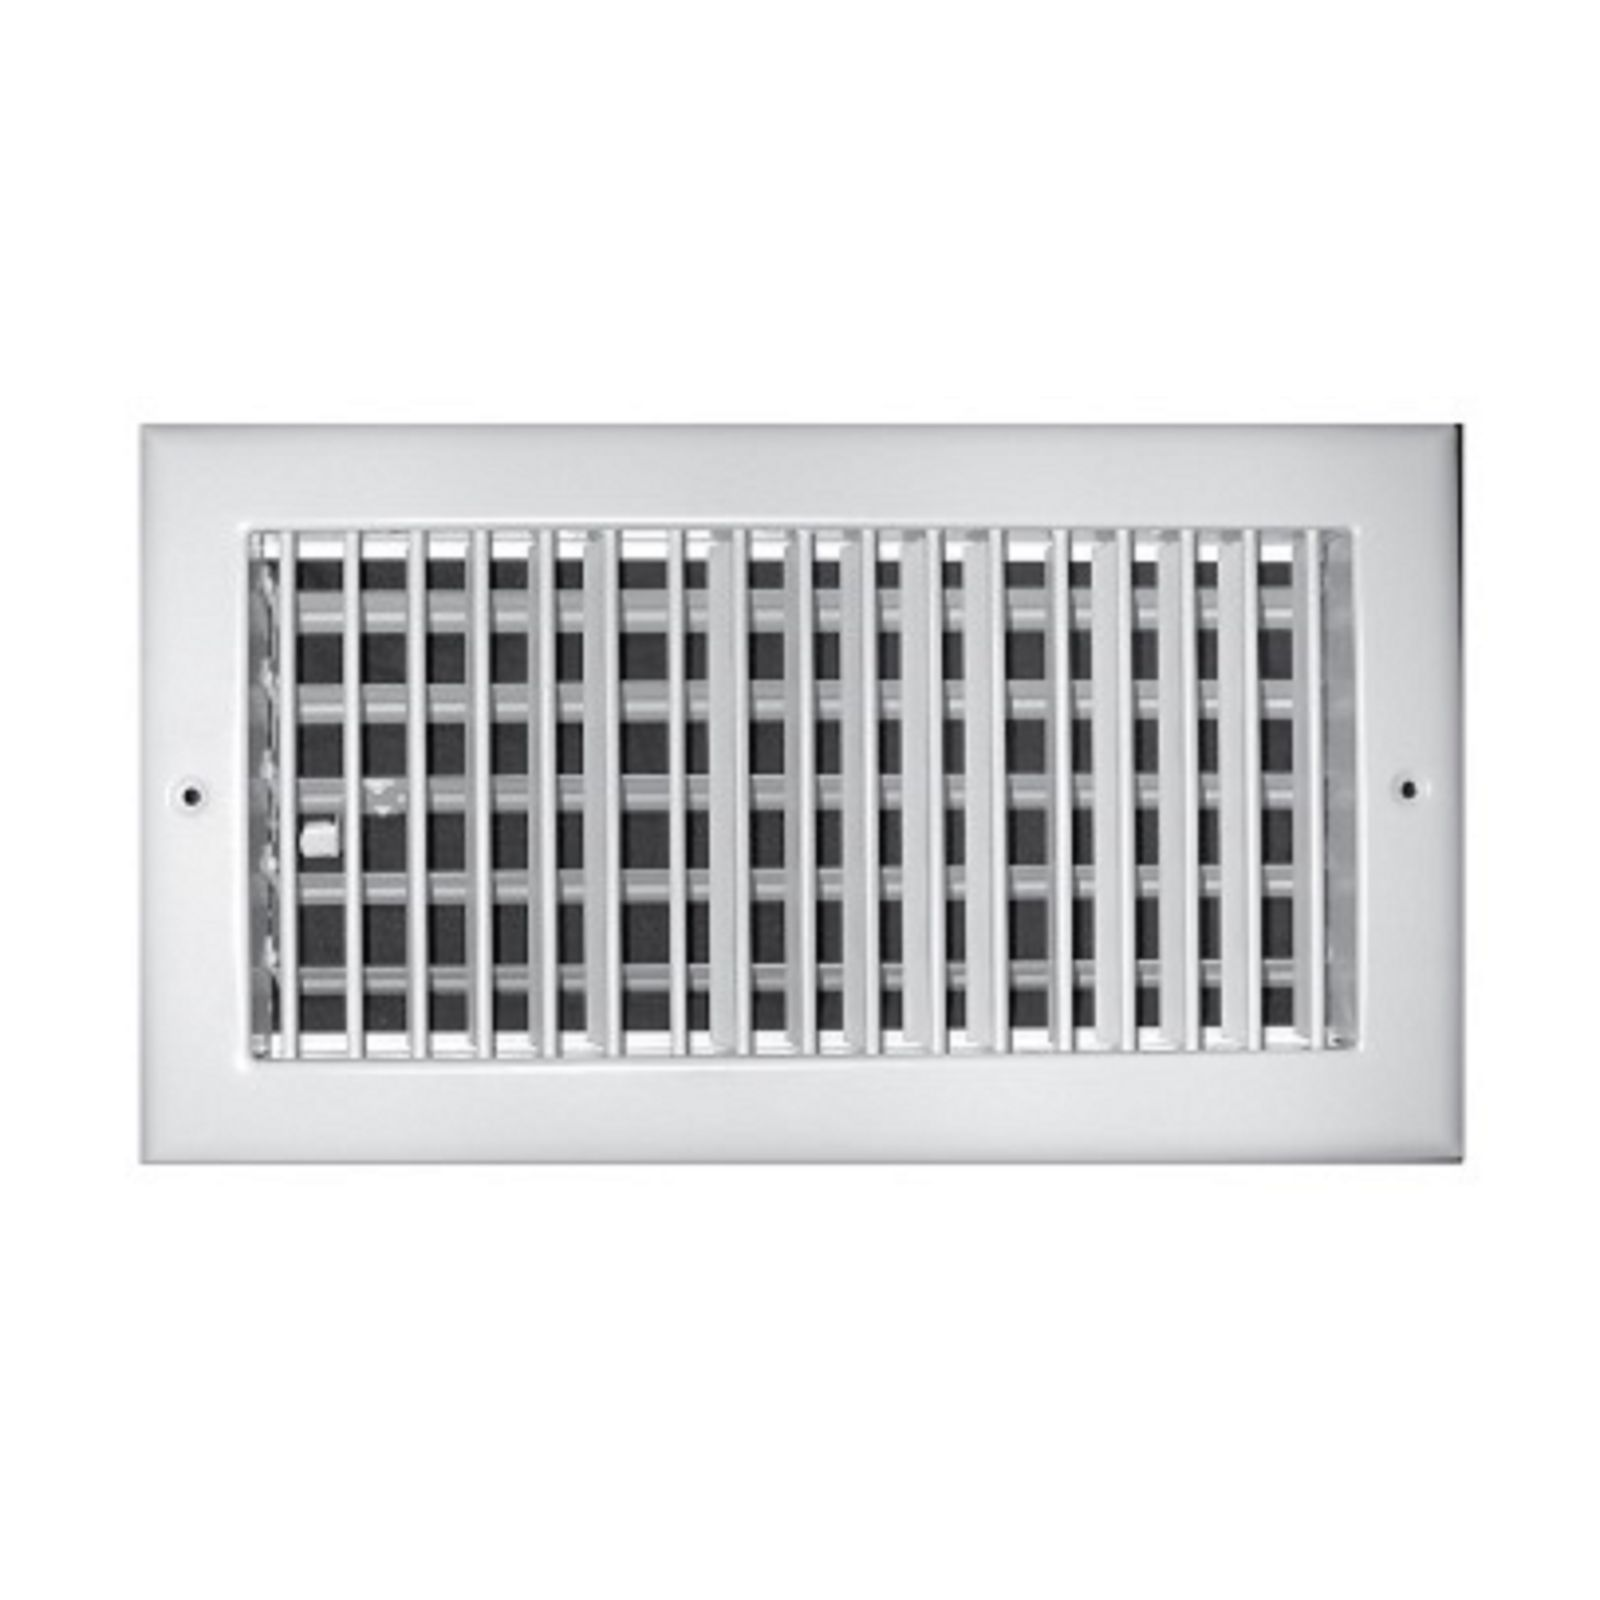 "TRUaire A210VM 14X10 - Aluminum Adjustable 1-Way Wall/Ceiling Register, Vertical, Multi Shutter Damper, White, 14"" X 10"""